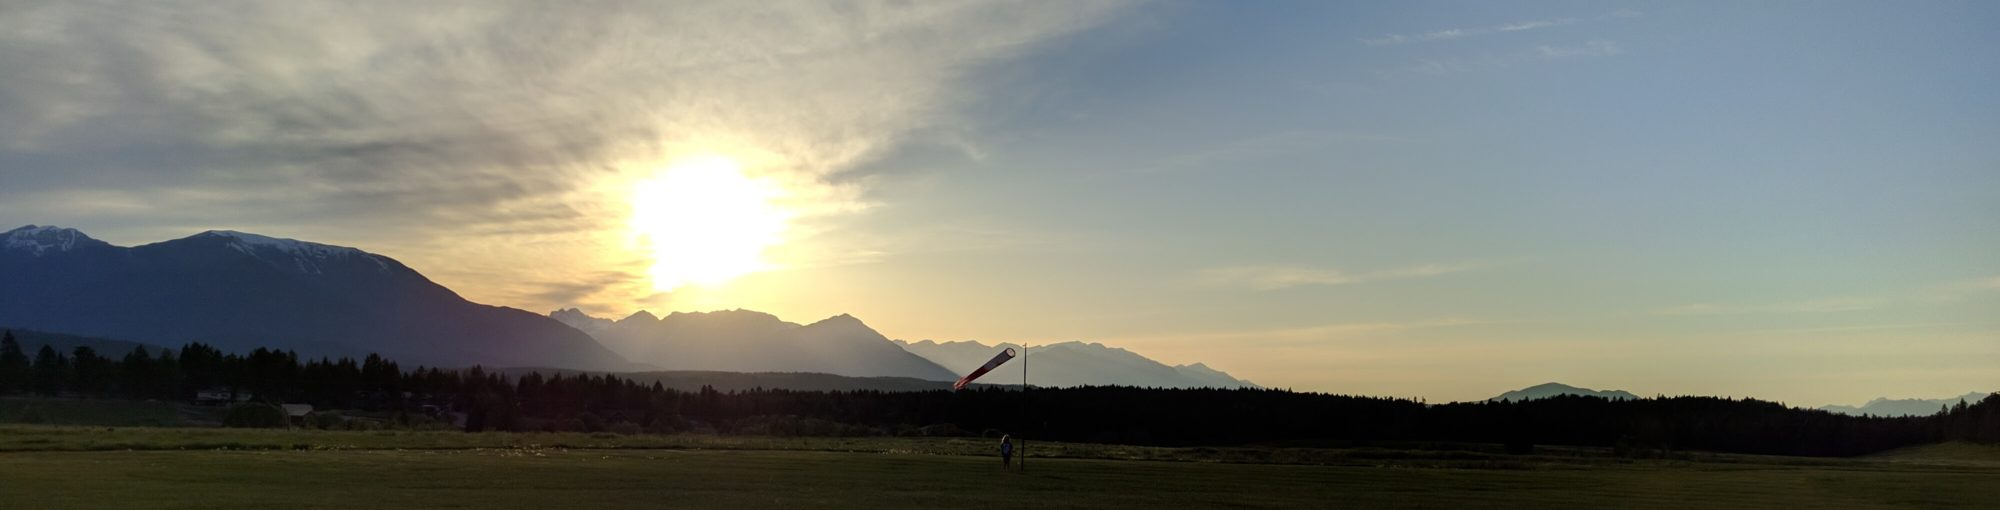 Columbia Valley Hang Gliding and Paragliding Society